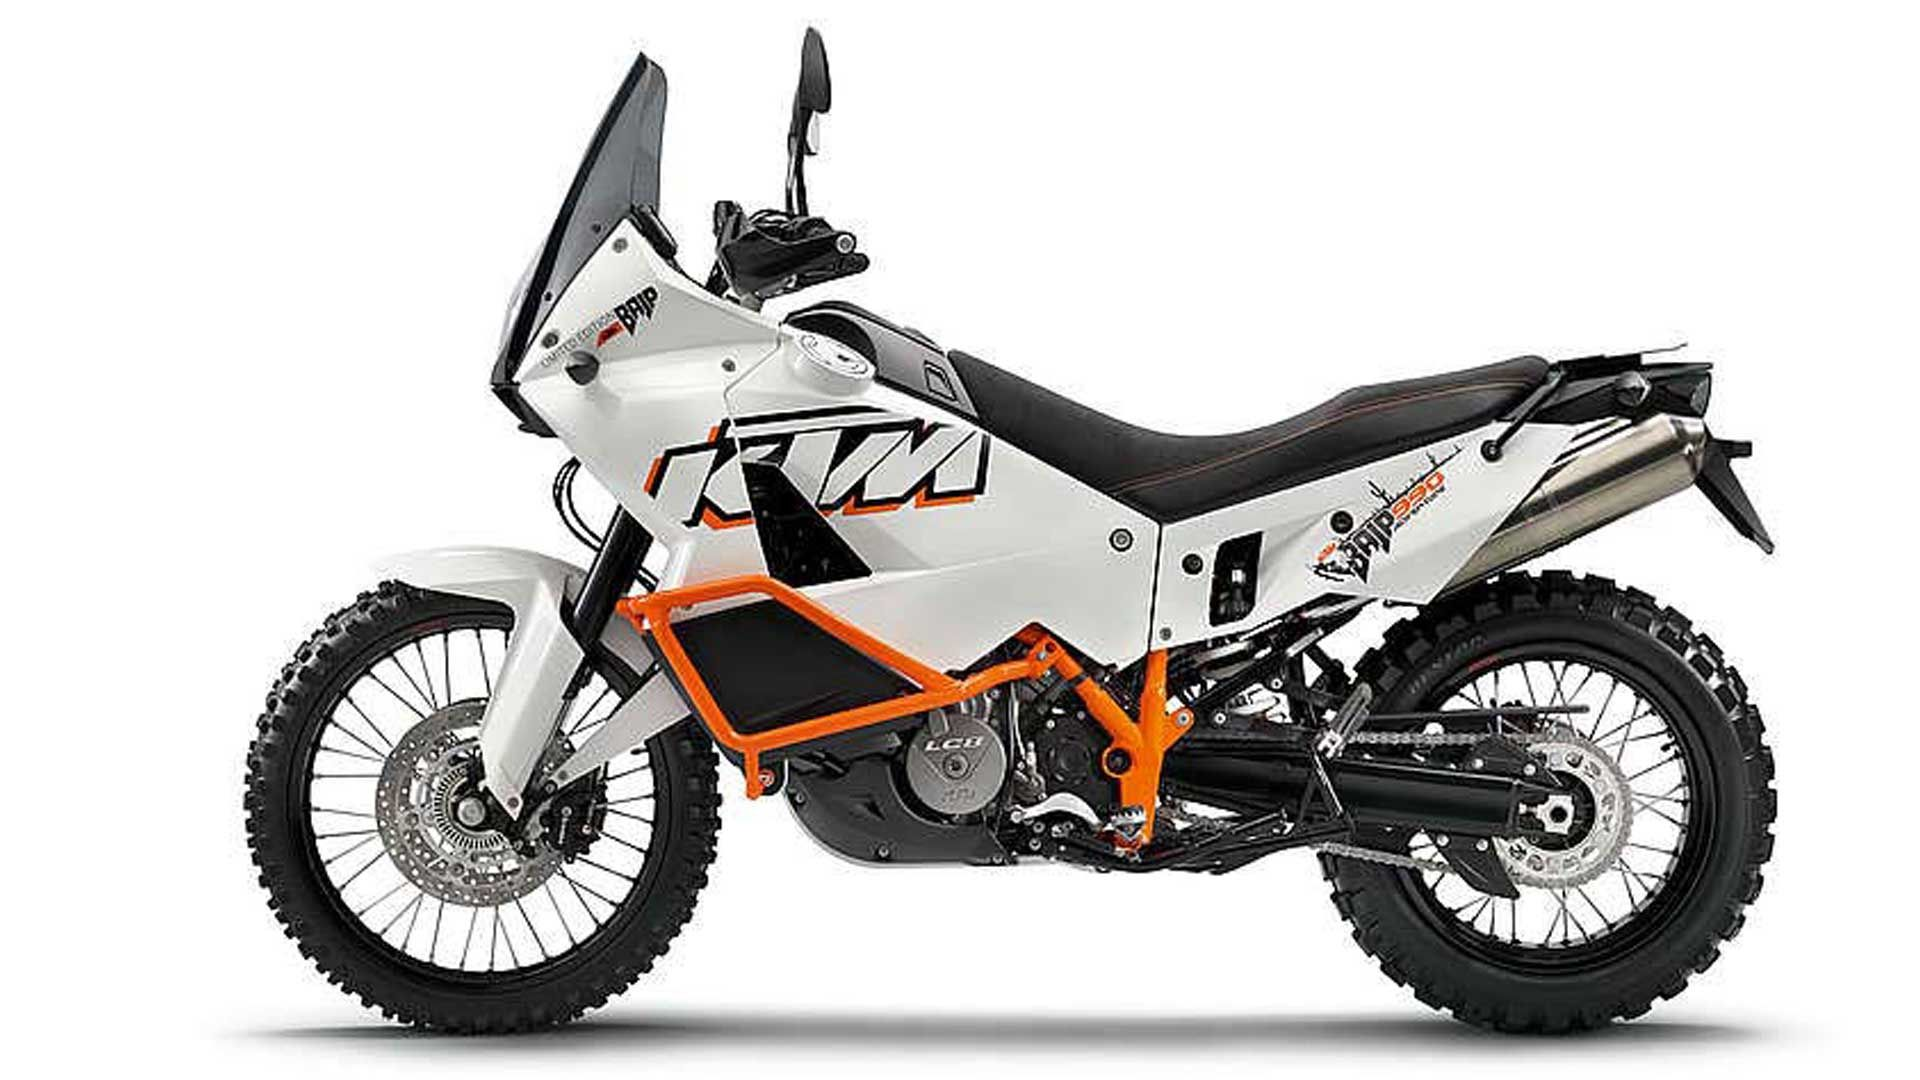 ktm 990 adventure 2012 | 2 wheels | Pinterest | Ktm adventure, Ktm ...